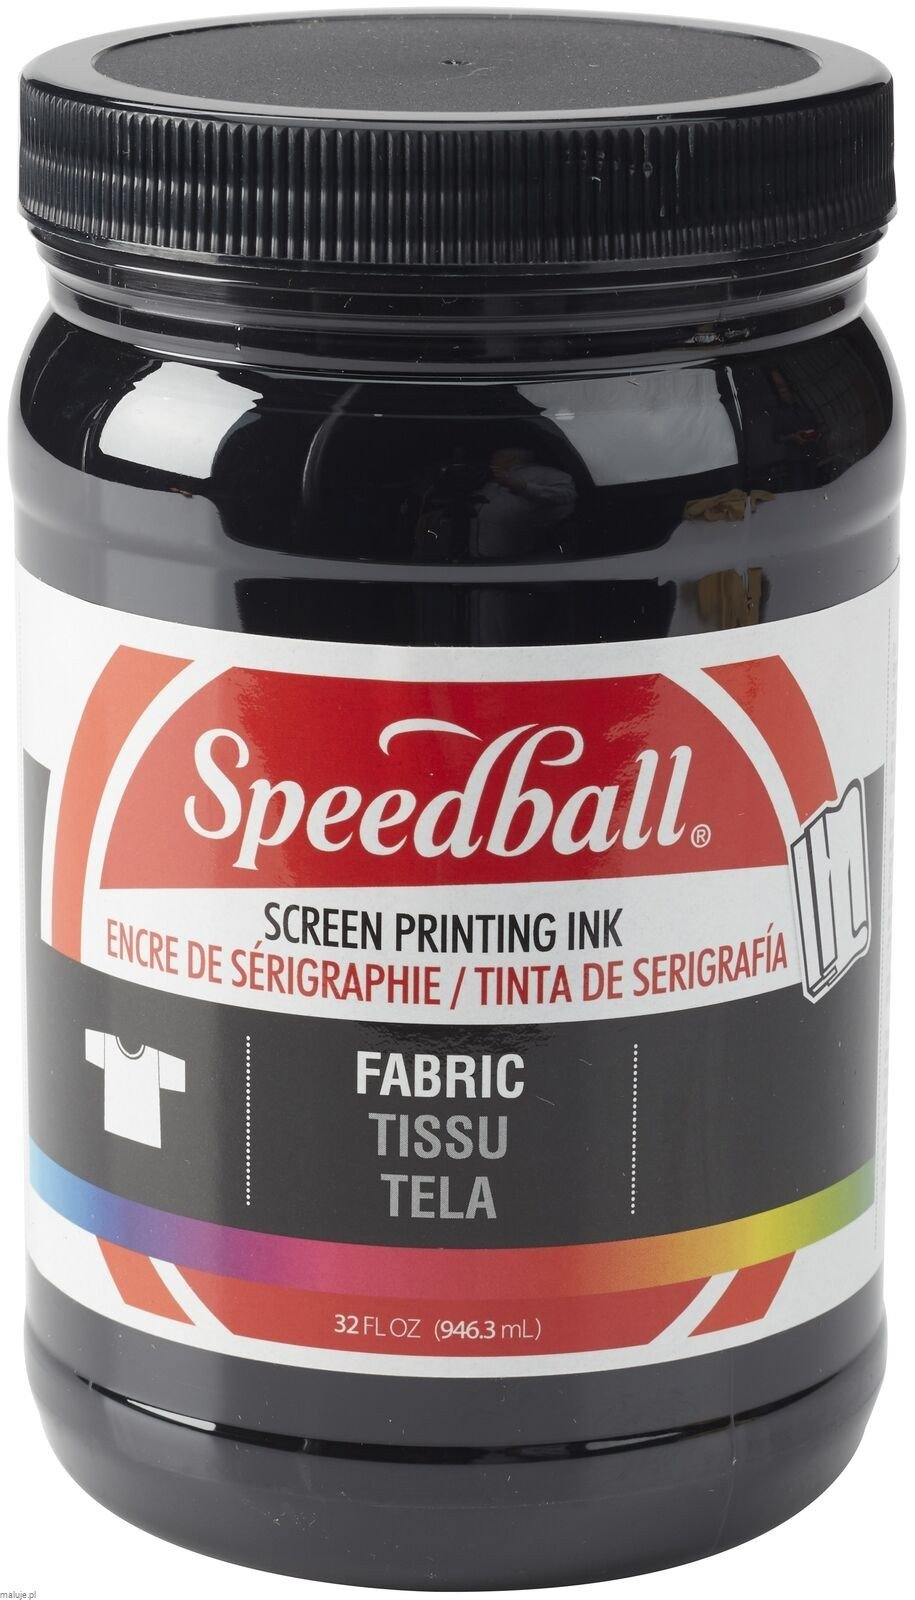 Speedball Fabric Screen Printing Ink BLACK - farba do sitodruku na tkaninach